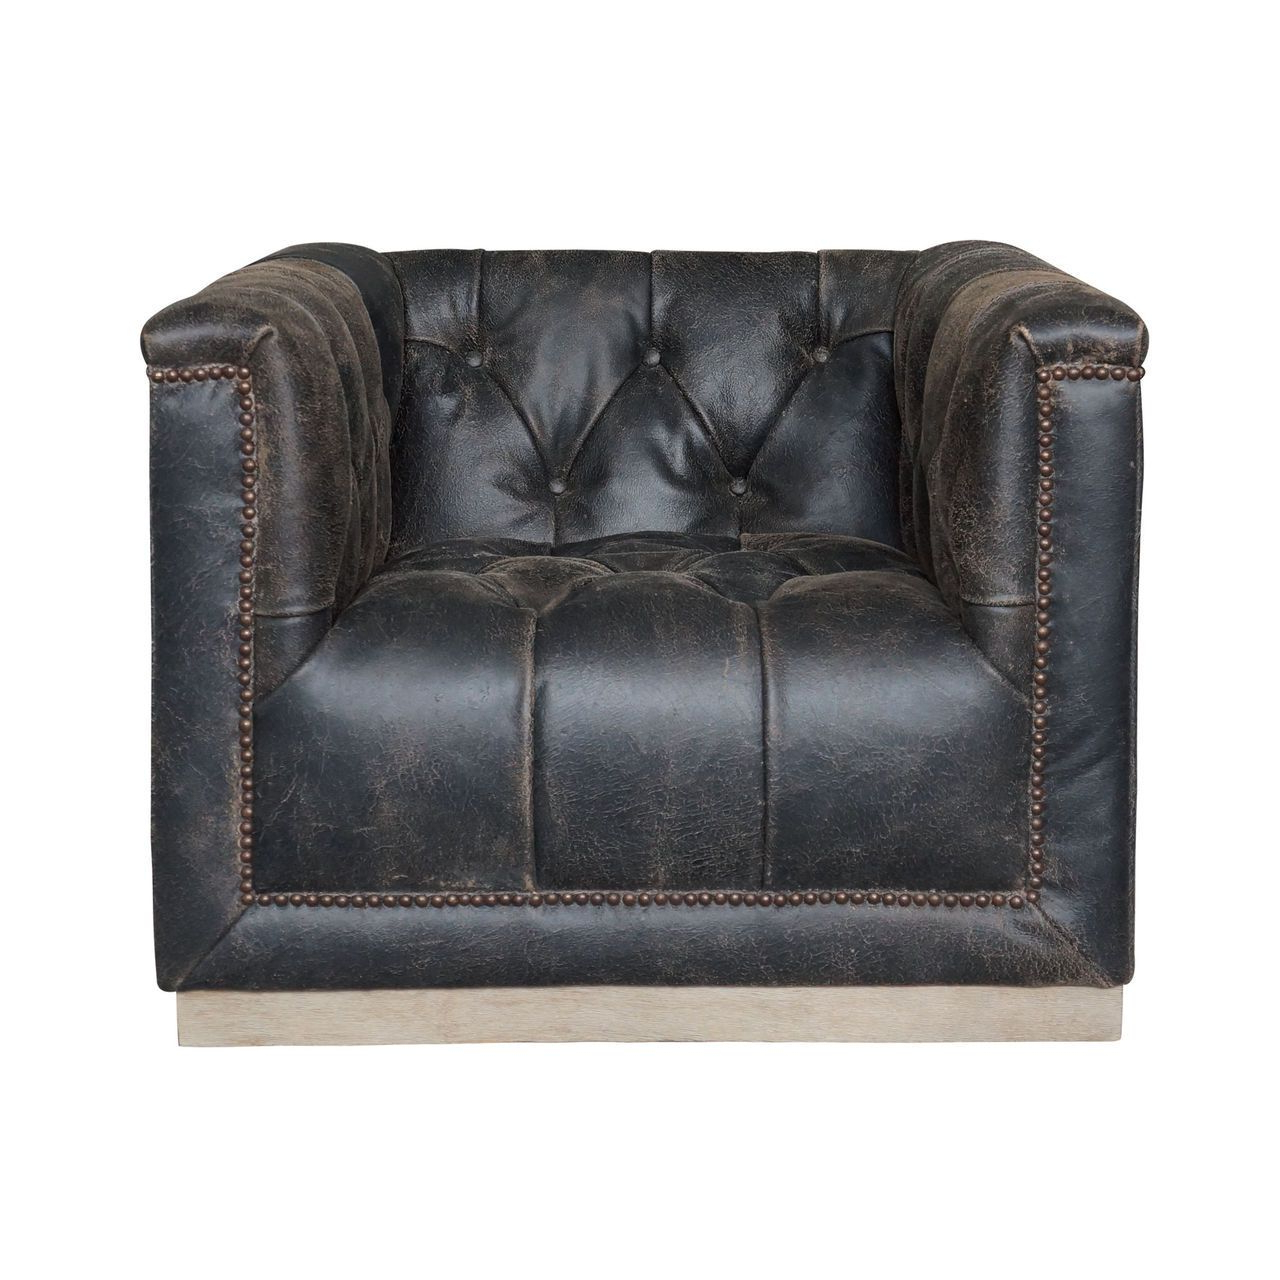 Maxx Distressed Black Leather Swivel Club Chair (View 9 of 20)